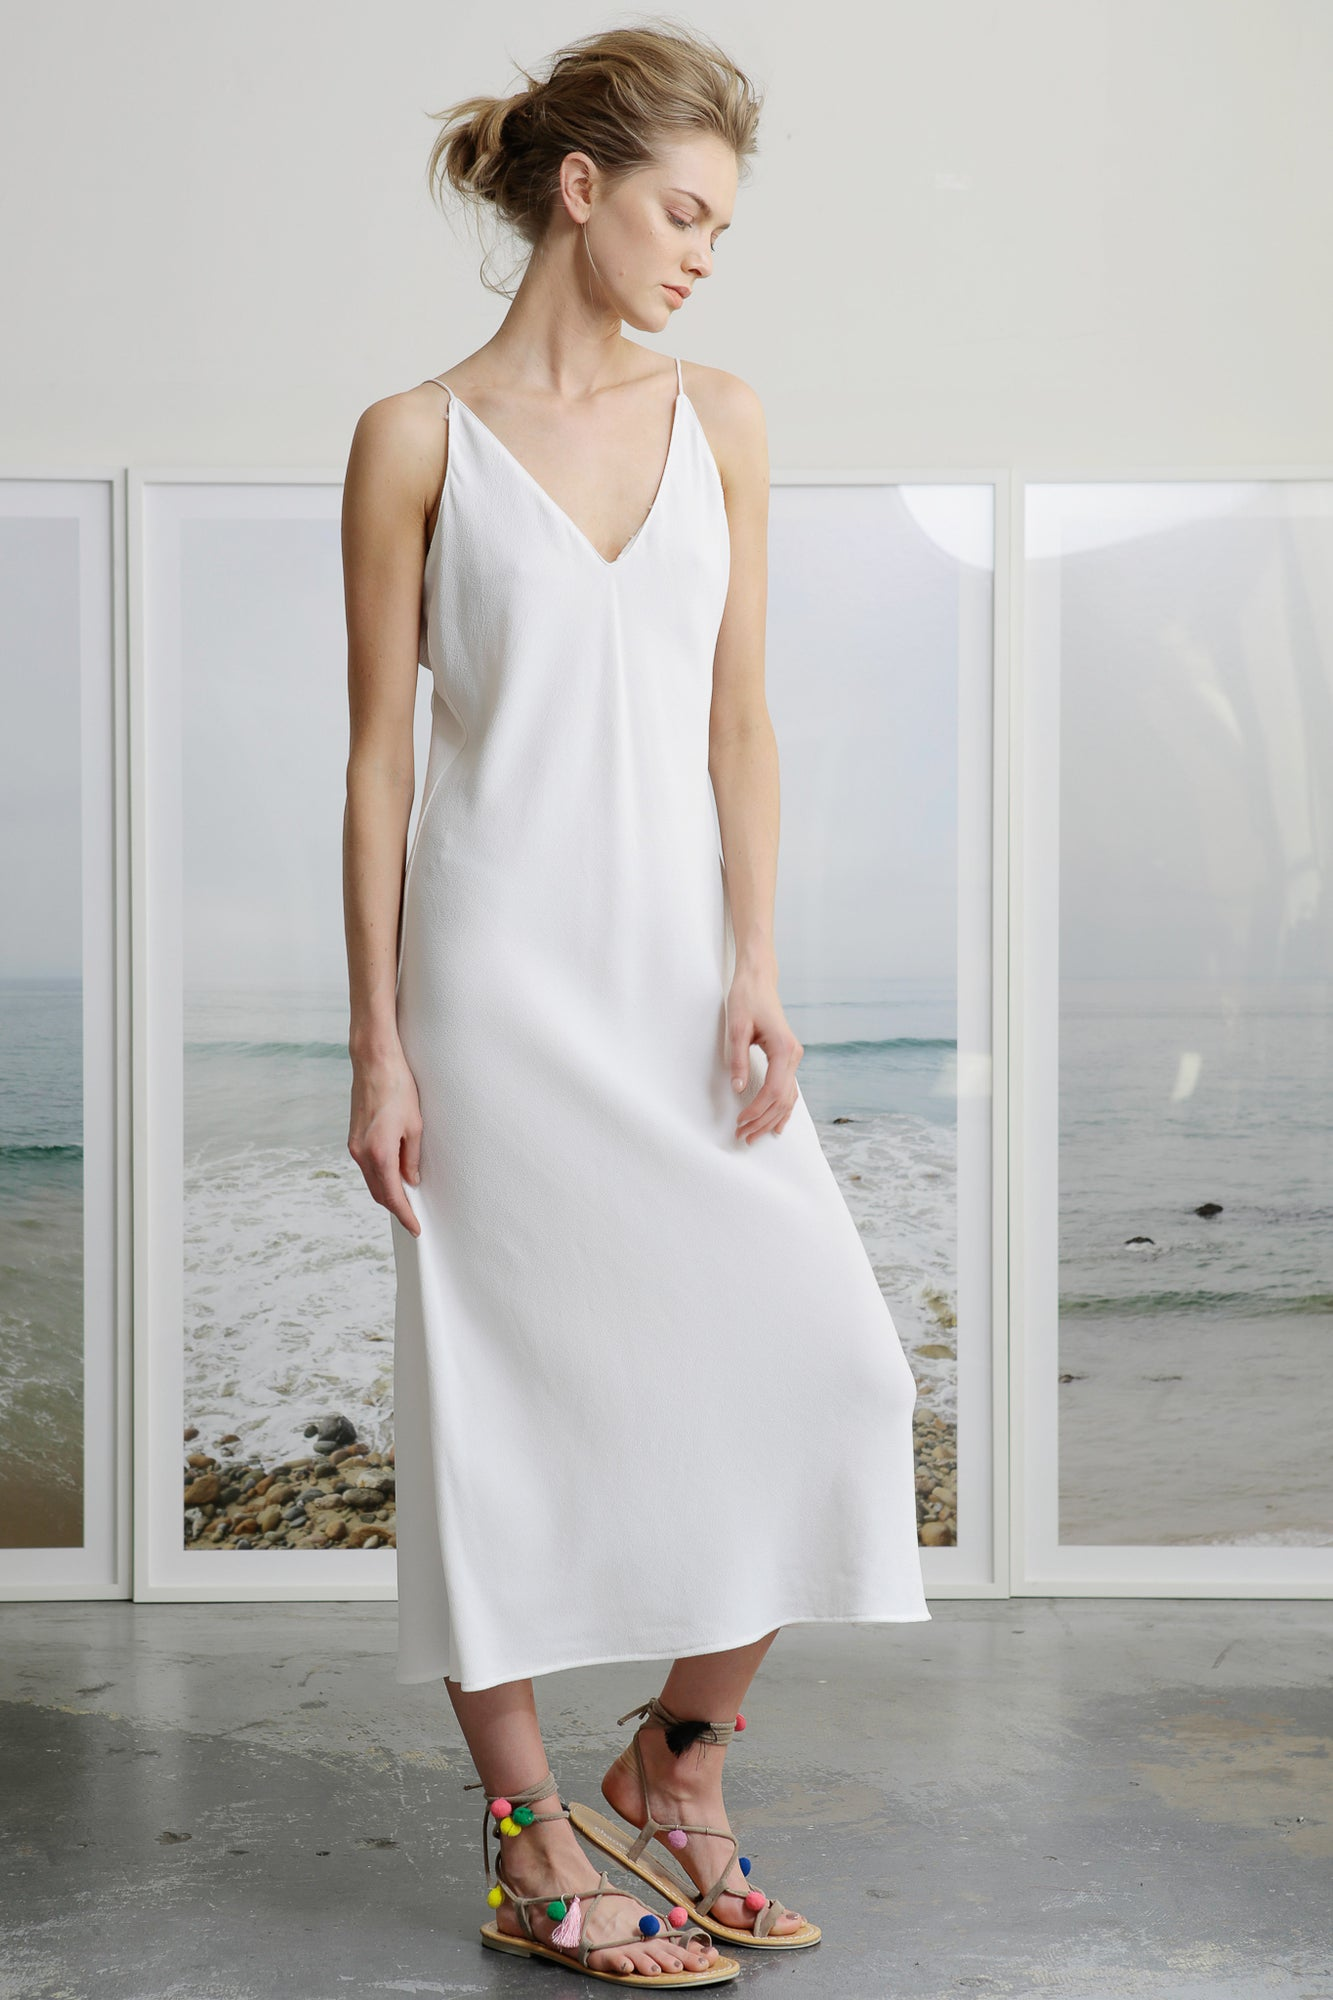 KURT SLIP DRESS - WHITE CREPE